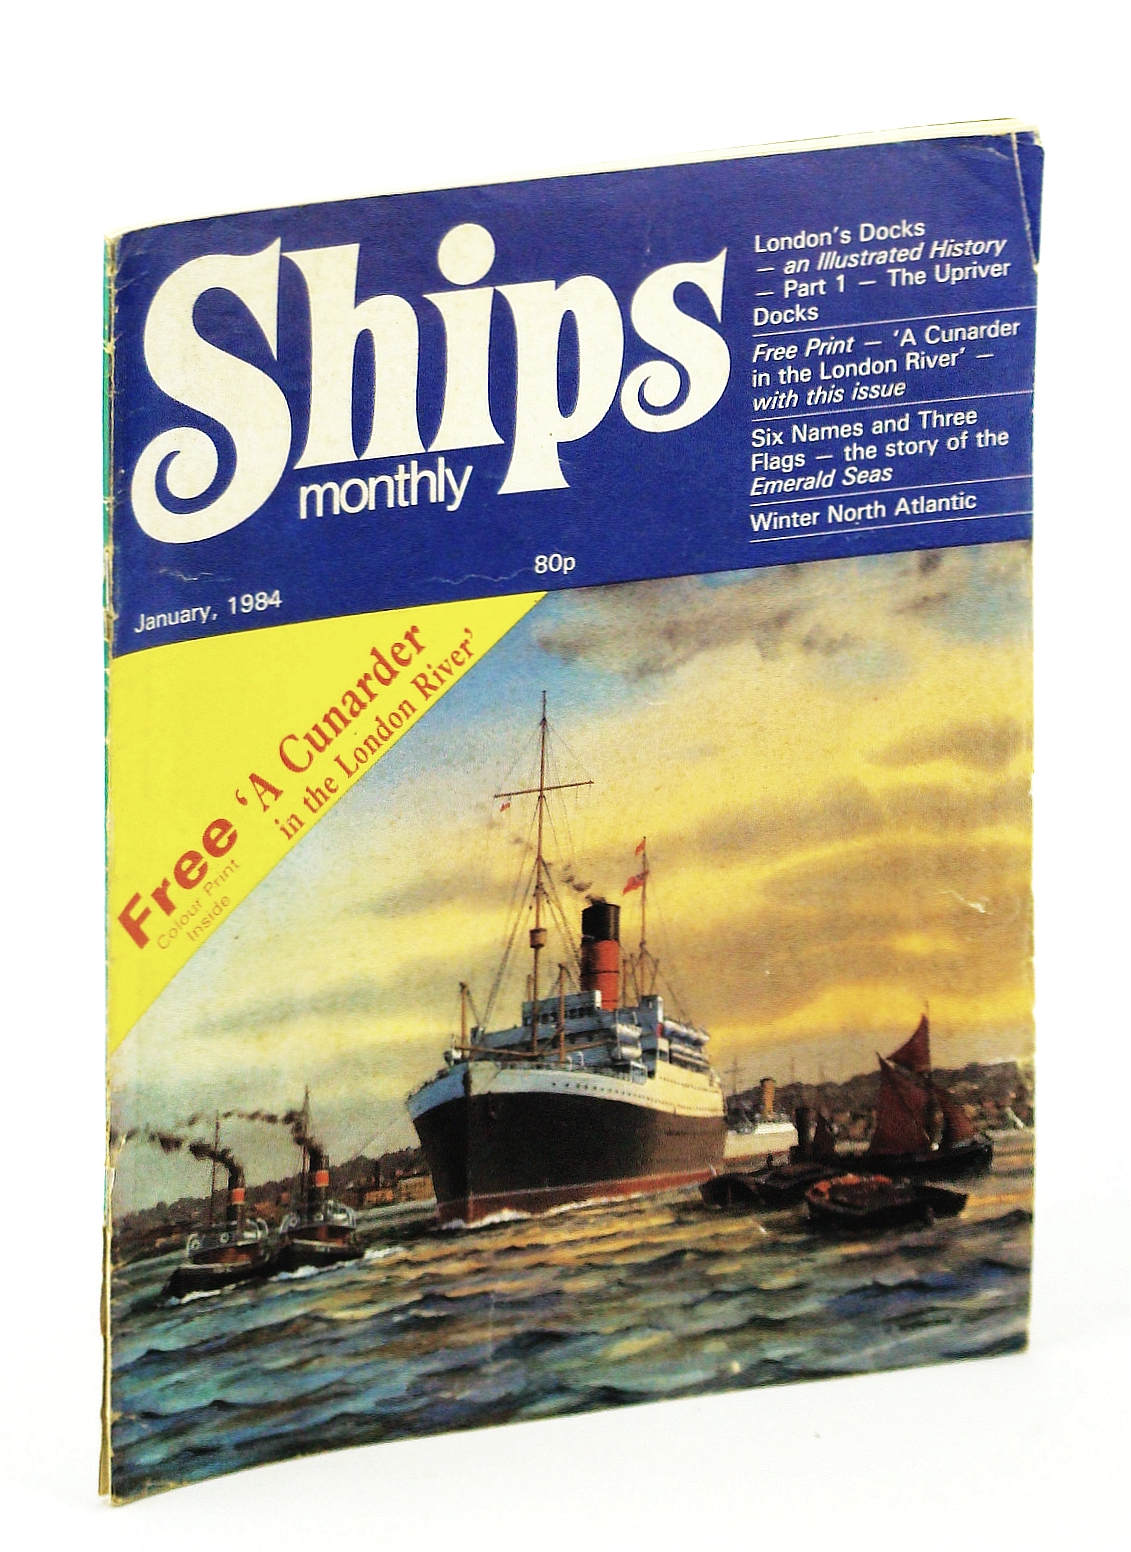 Image for Ships Monthly - The Magazine for Shiplovers Ashore and Afloat, January 1984 - The History of London's Docks (Part 1)